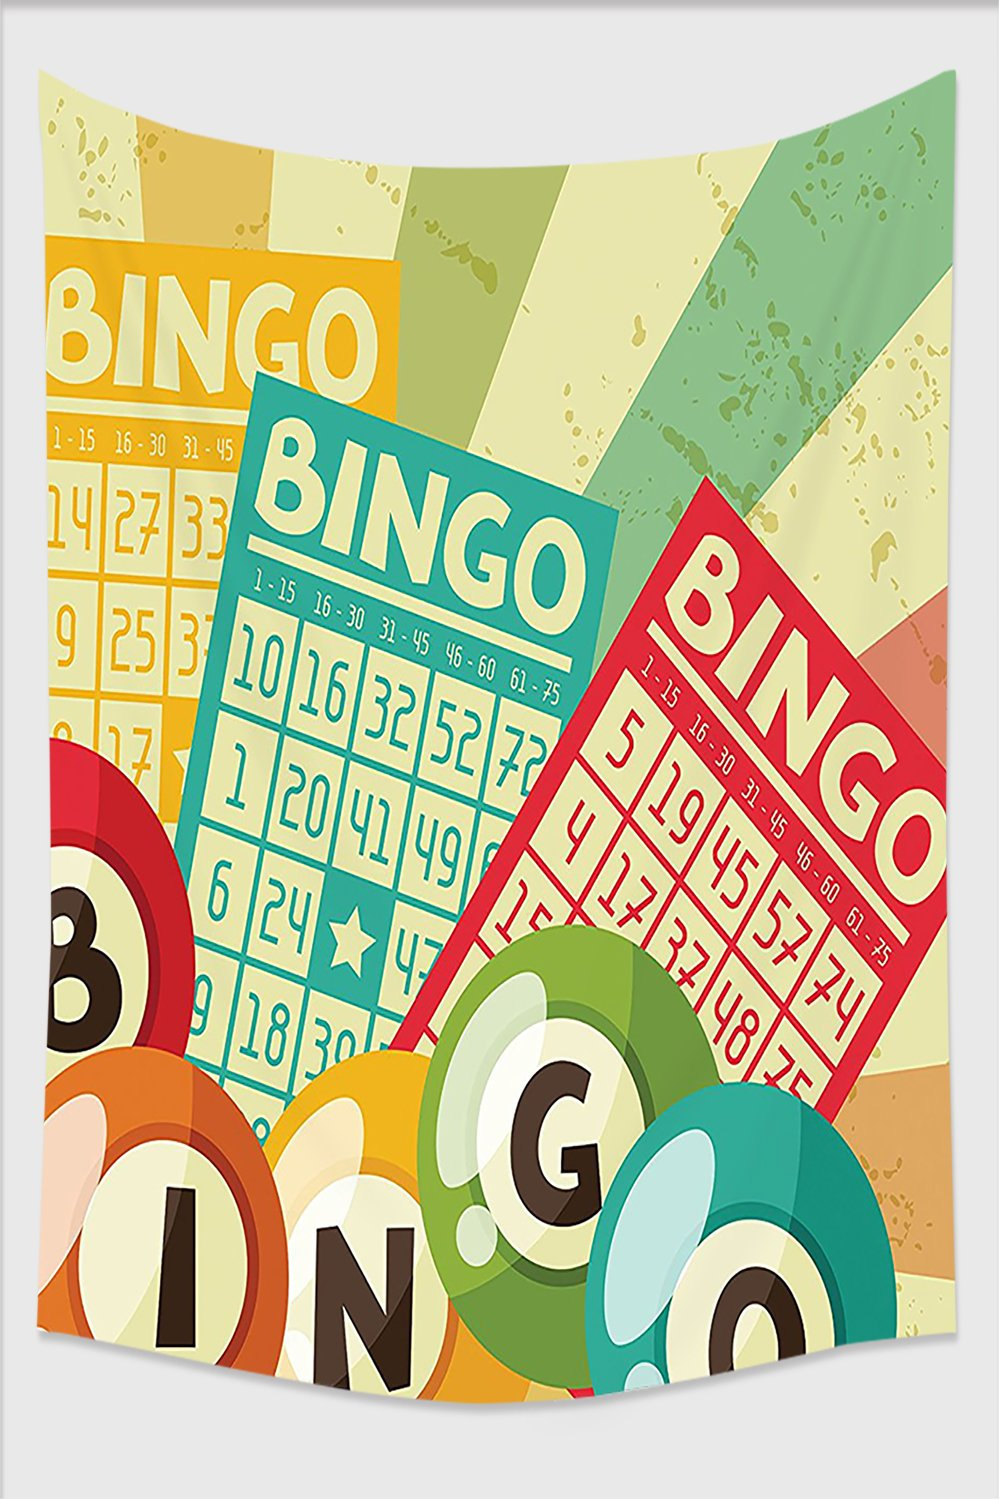 Nalahome-Vintage Decor Bingo Game with Ball and Cards Pop Art Stylized Lottery Hobby Celebration Theme Multi Tapestry Wall Hanging Wall Tapestries 59L x 51.1W Inches